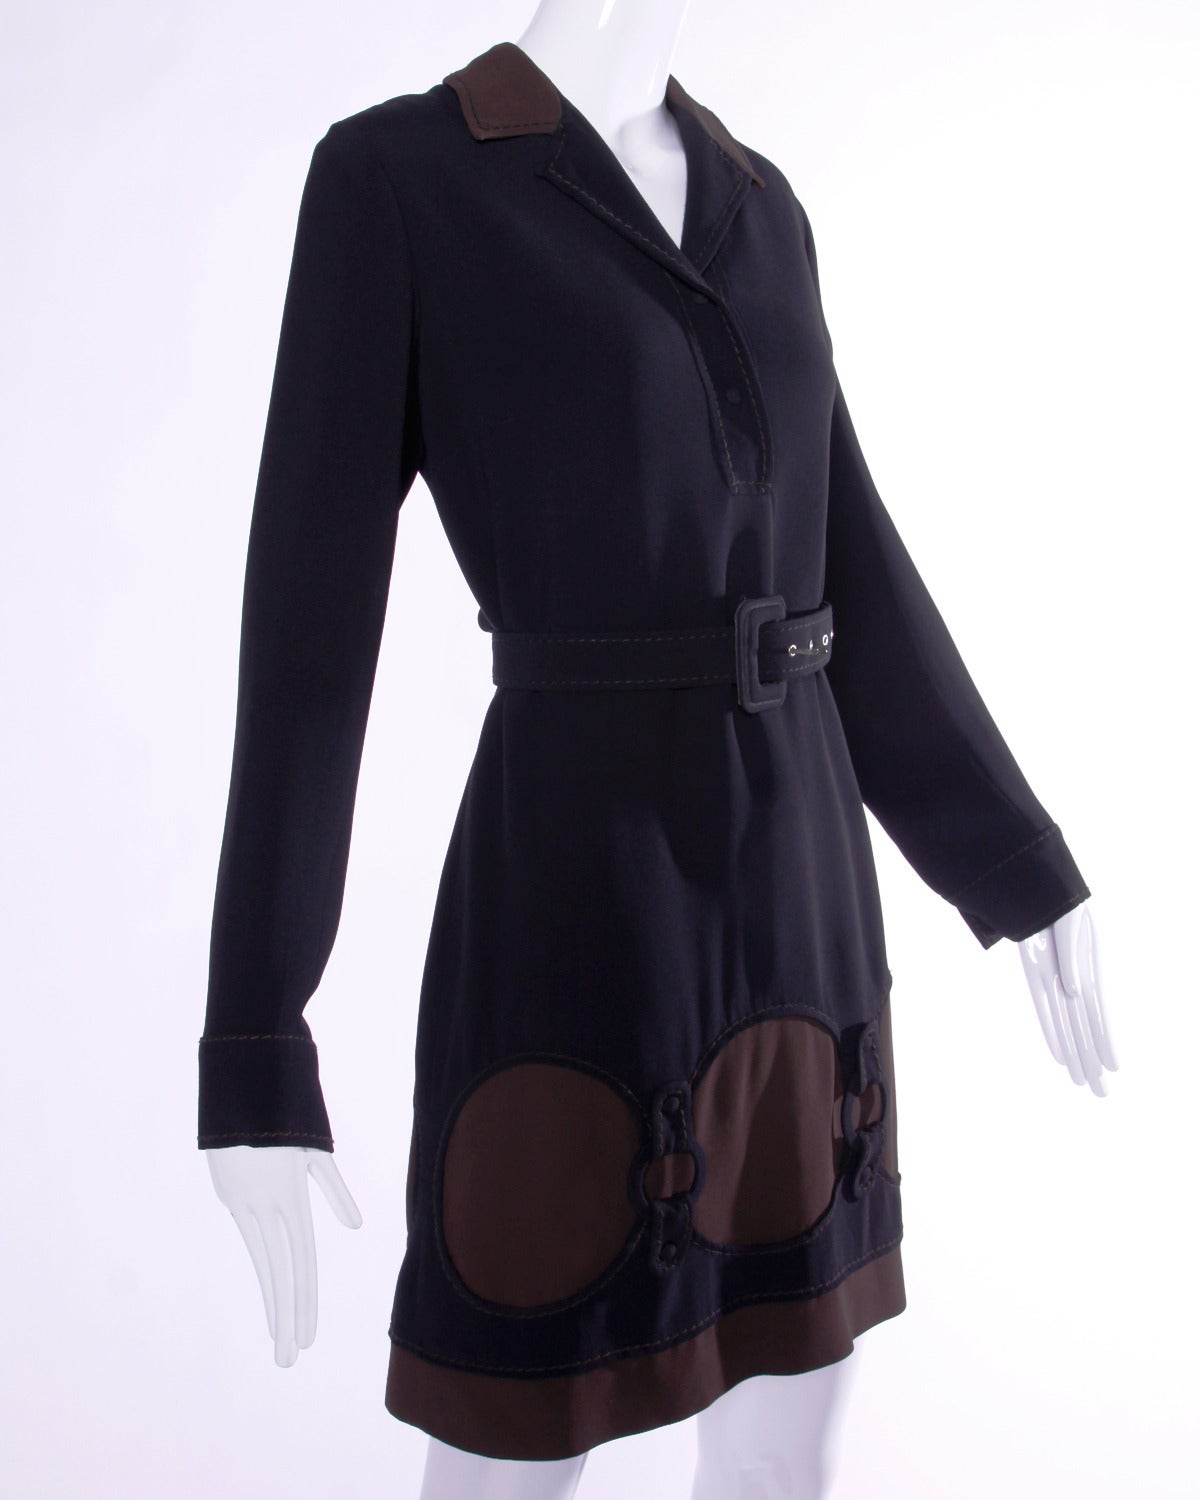 Moschino Vintage 1990s 90s Black + Brown Cut Out Shift Dress + Belt For Sale 3